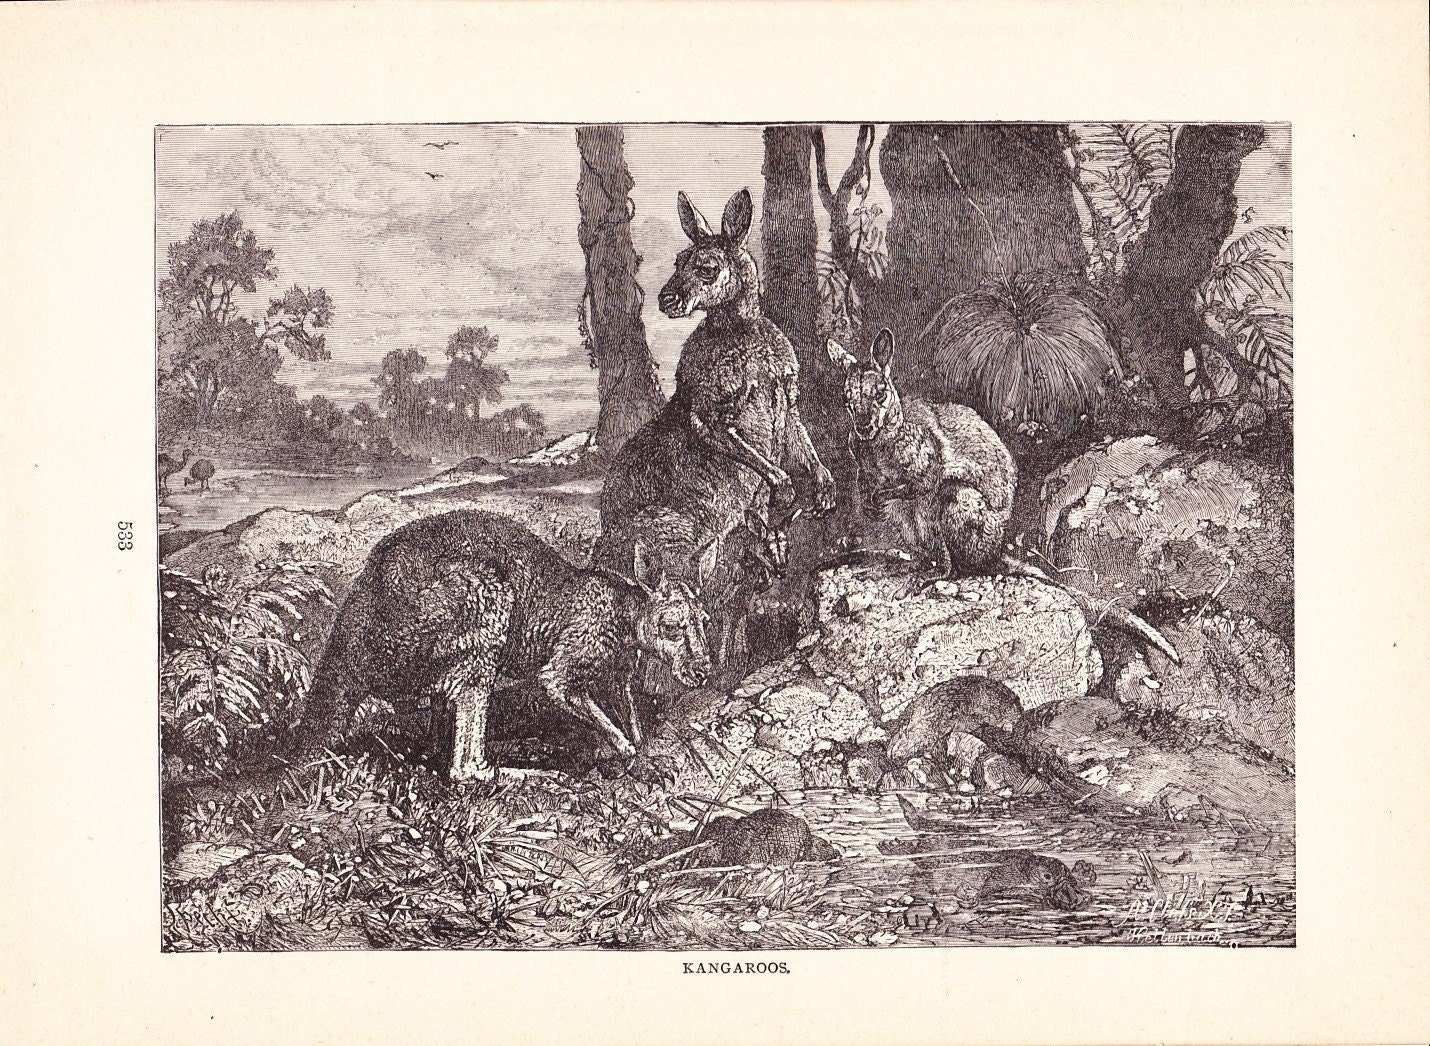 1880 Animal Print Kangaroos Vintage Antique Home Decor Art